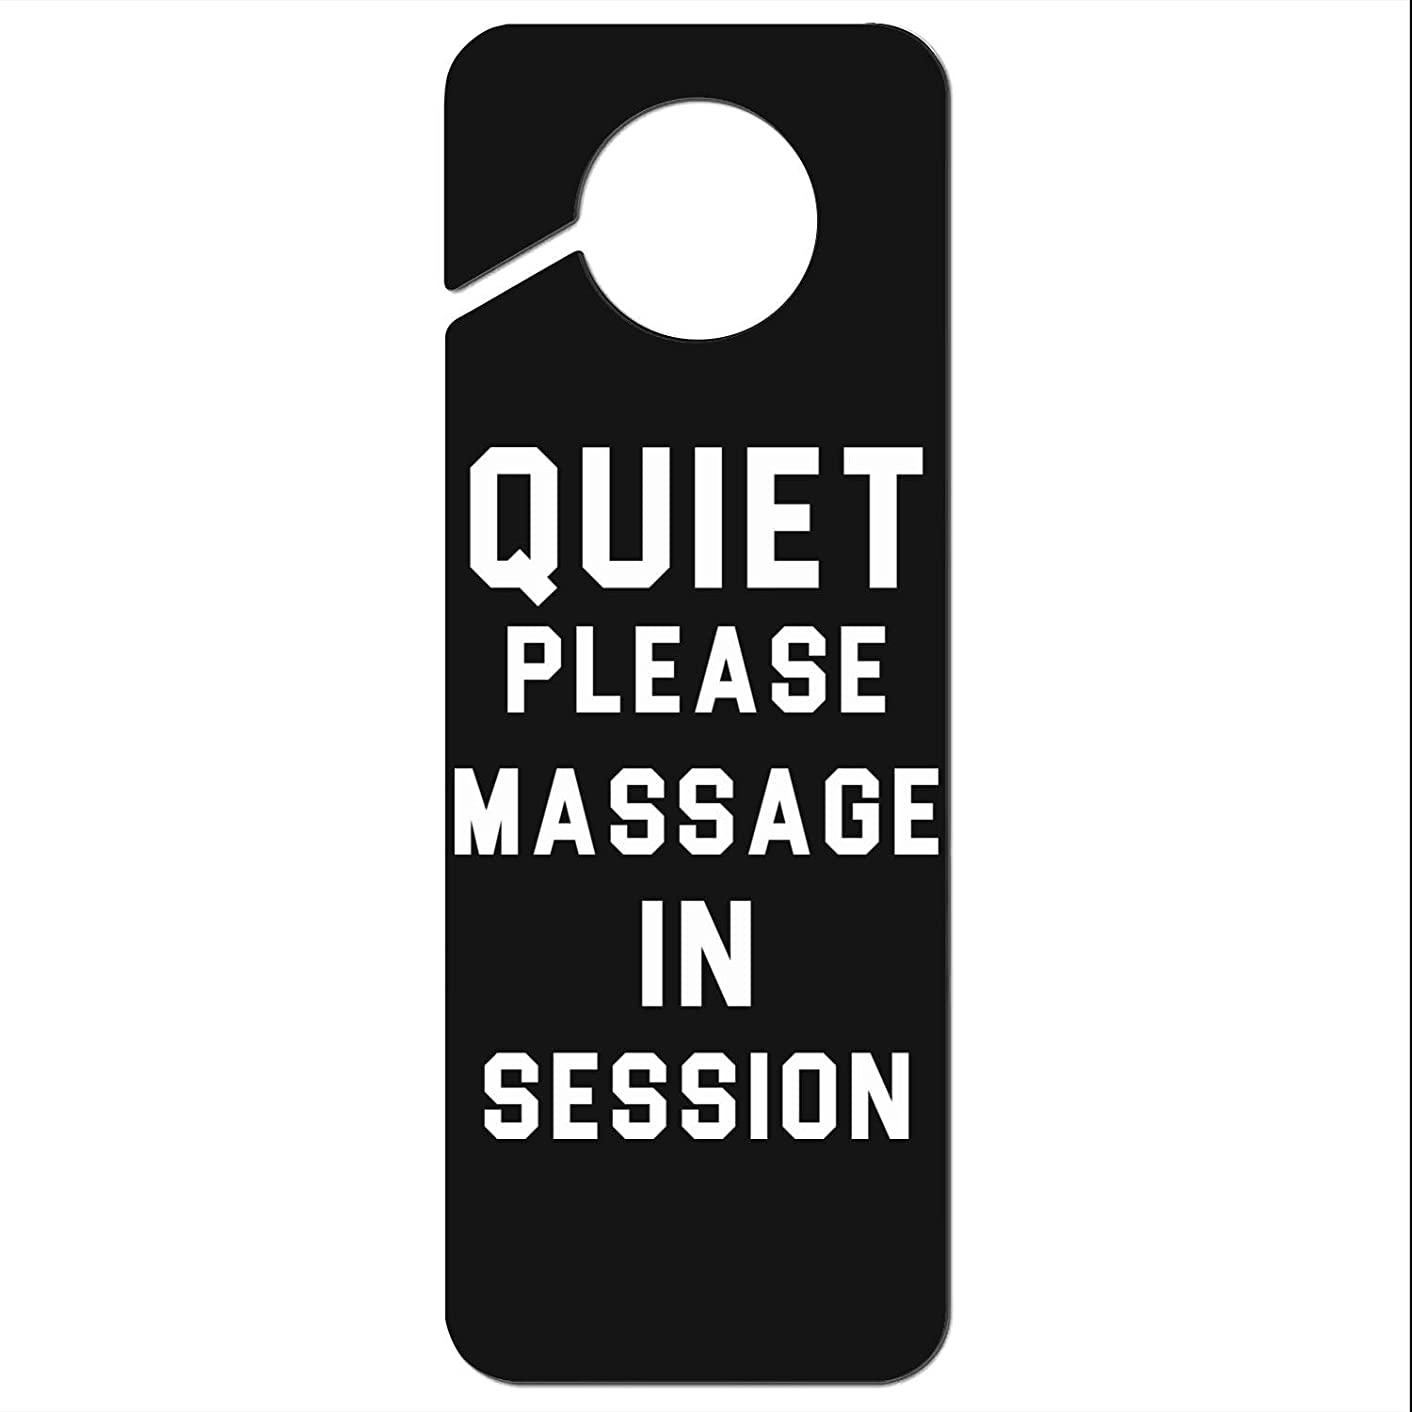 VR4U Quiet Please Massage in Session Door Knob Hanger Sign for Office, Hotel, Home, Clinic, Therapy